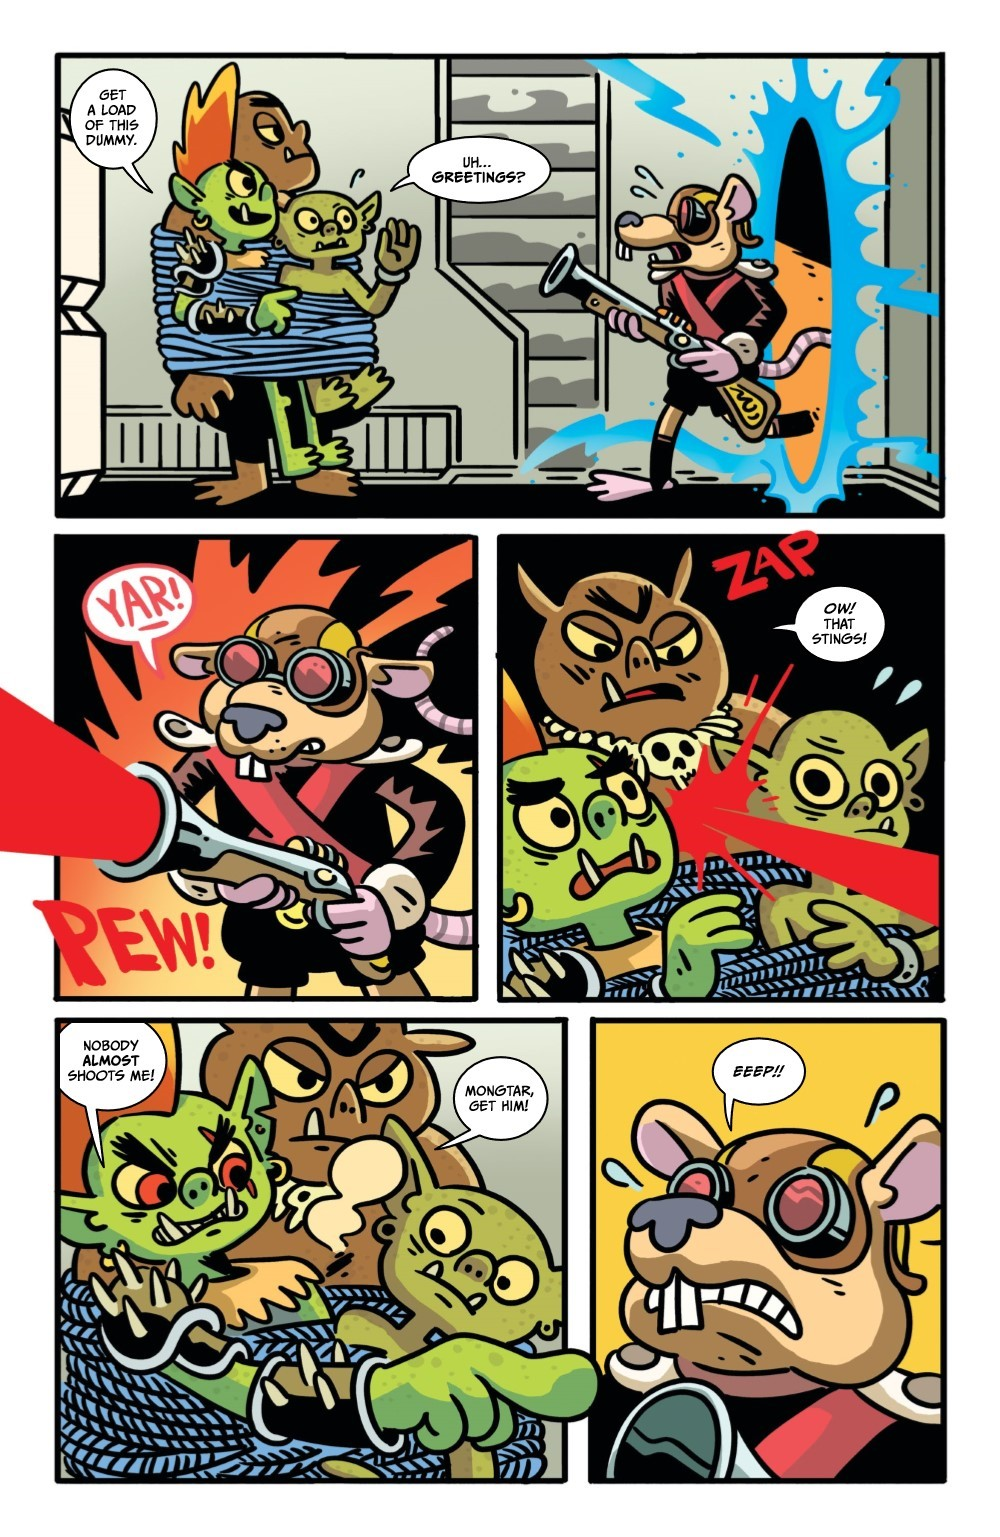 ORCSINSPACE-3-REFERENCE-09 ComicList Previews: ORCS IN SPACE #3